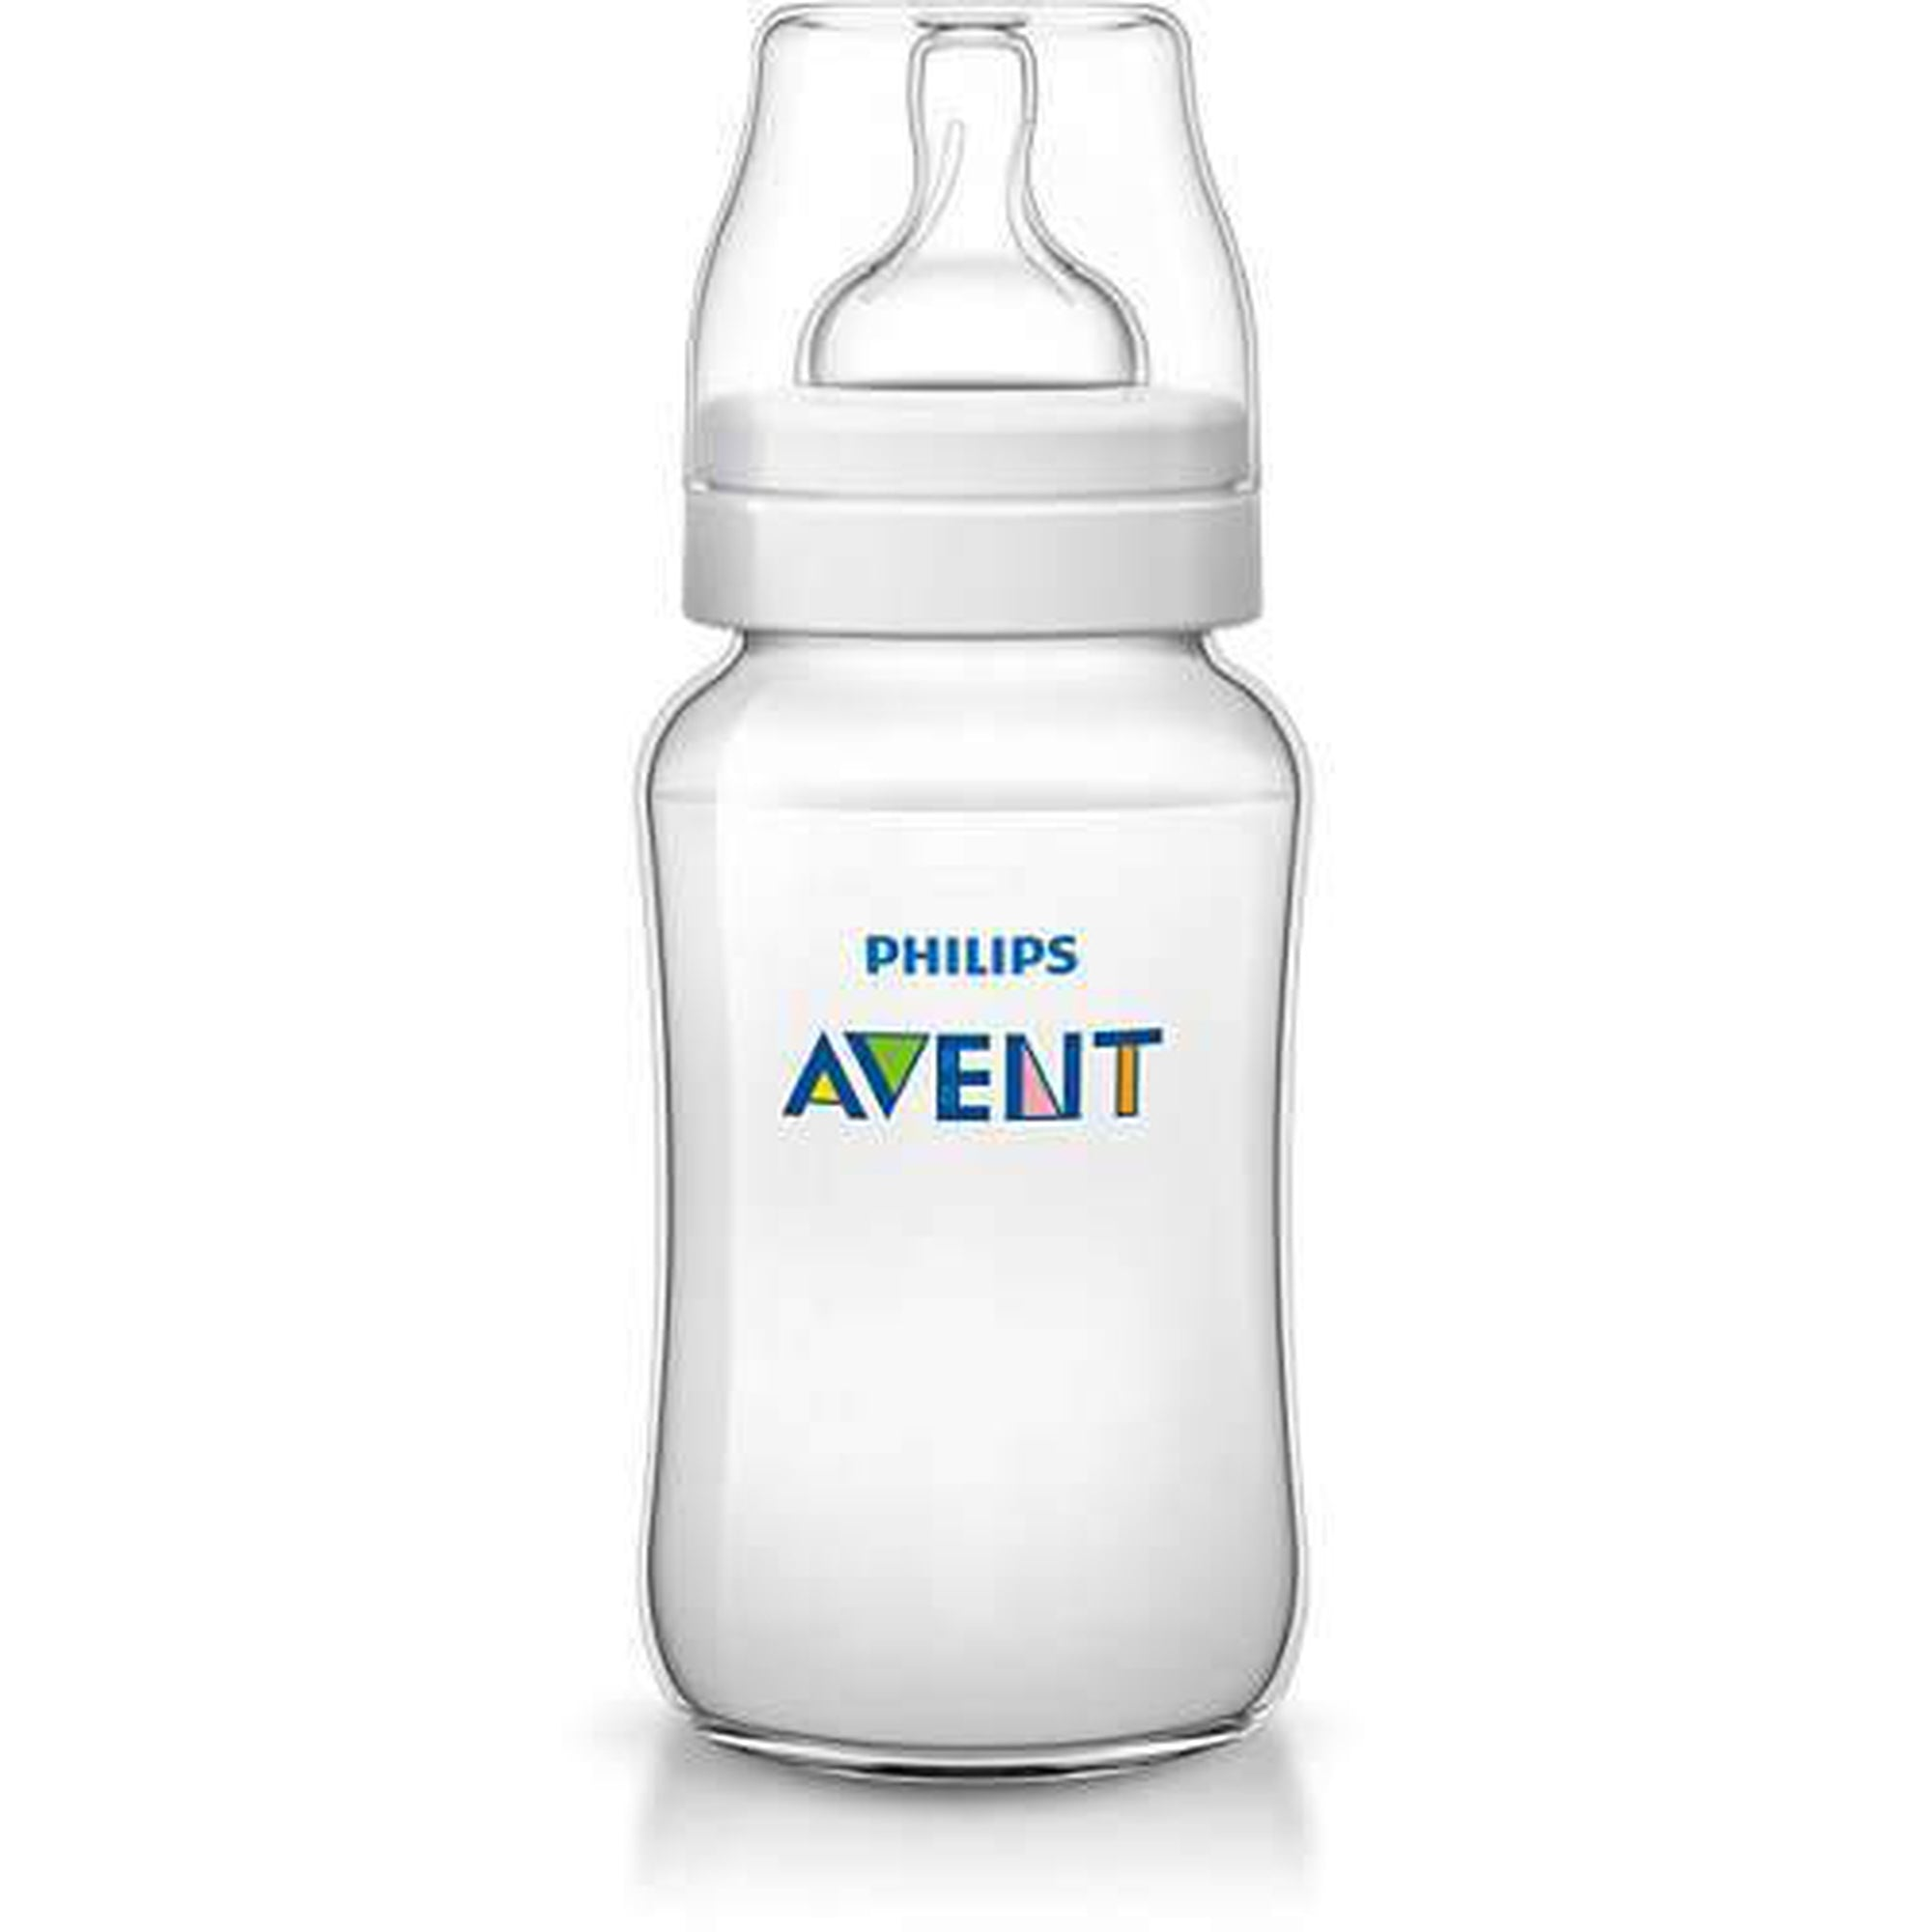 Avent Classic Feeding Bottle 330ml-Bottles-Mother and Baby Shop Kenya's #1 Online Baby Shop